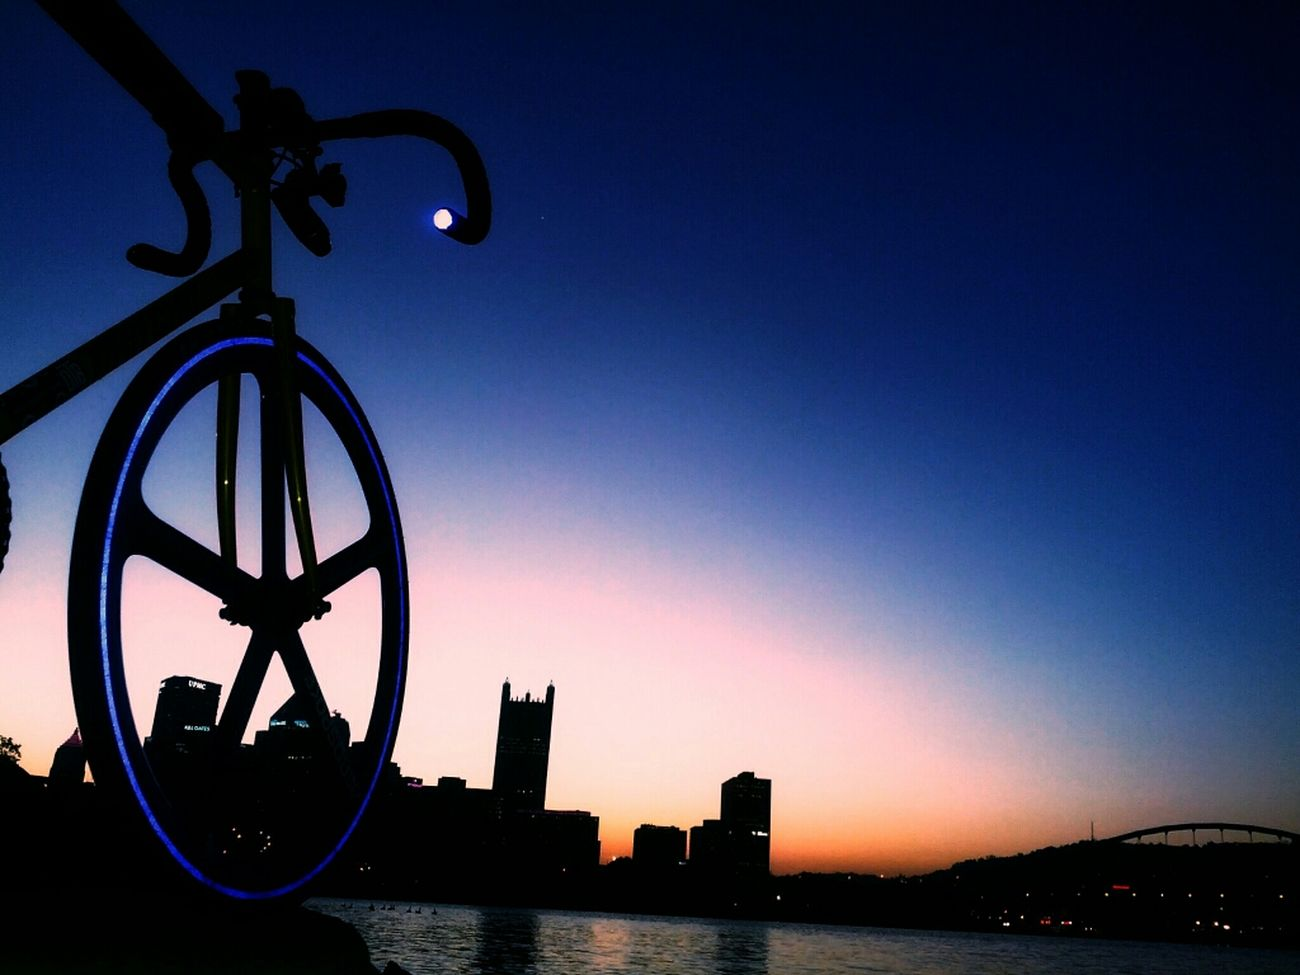 They came for your novels. Not what's written down in pages bare, but the thoughts behind your vacant stare. So I took flight. Not by wing or engine spinning round but by wheels upon the hardened ground. To the ascending towers. Under a sky once dark and City Sunrise Fixed Gear Pittsburgh Skyporn Fixie Mercier Aerospoke Dropbars Kilo Tt Fiks